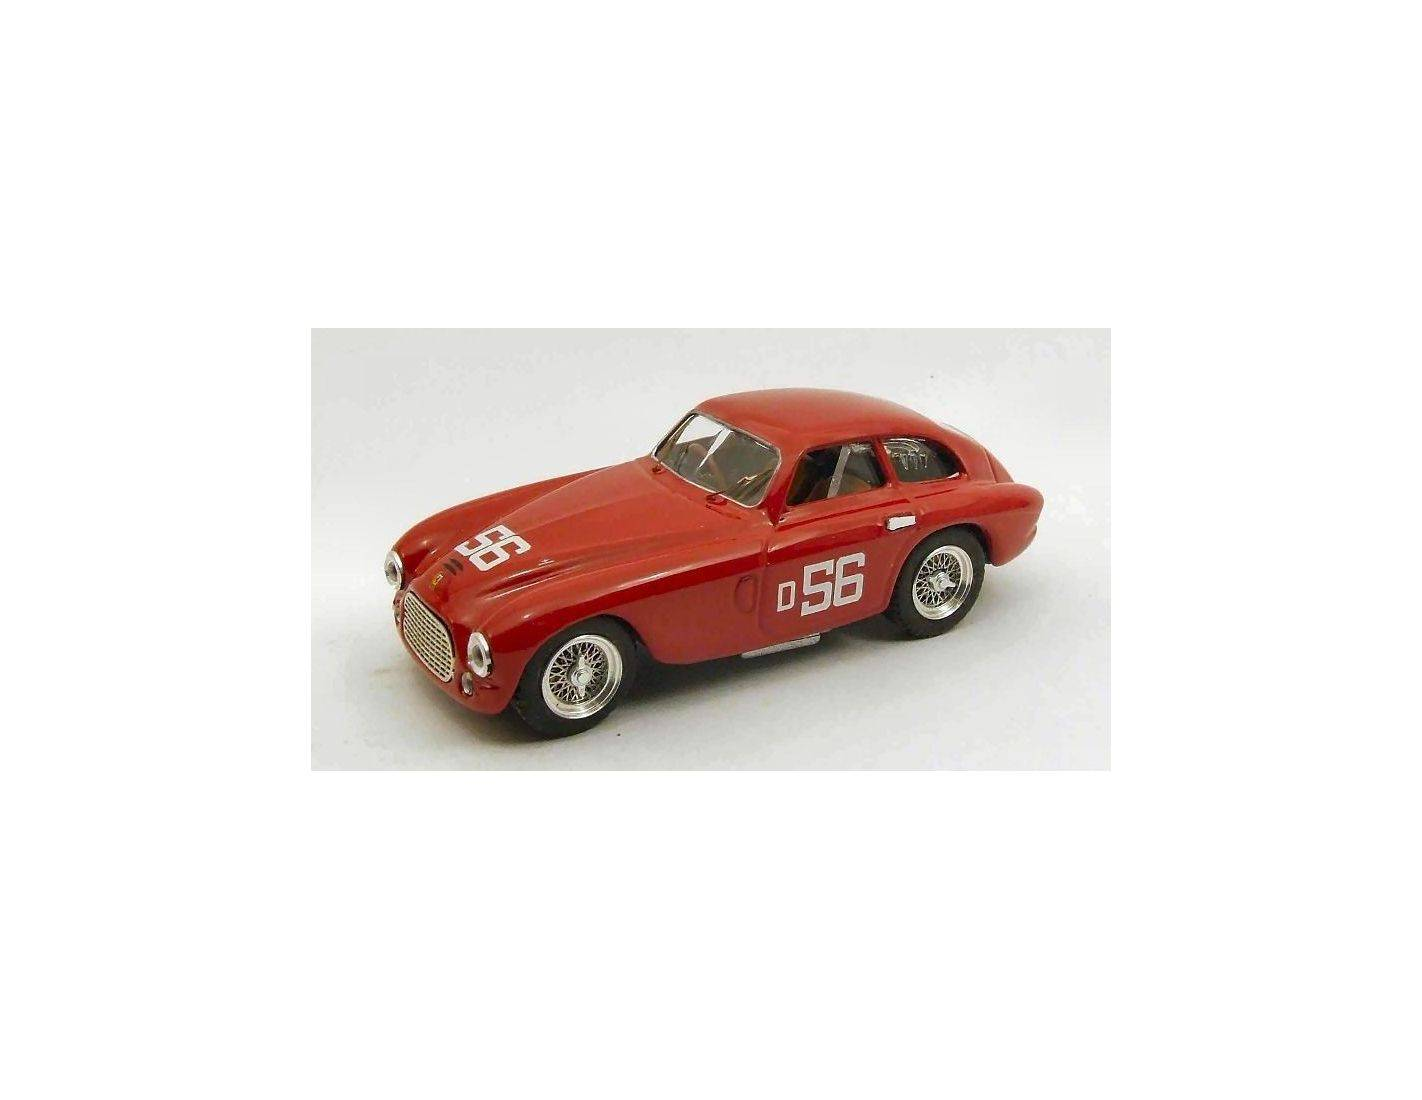 Art Model AM0248 FERRARI 195 S N.56 2nd BRIDGEHAMPTON 1951 P.WALTERS 1:43 Modellino